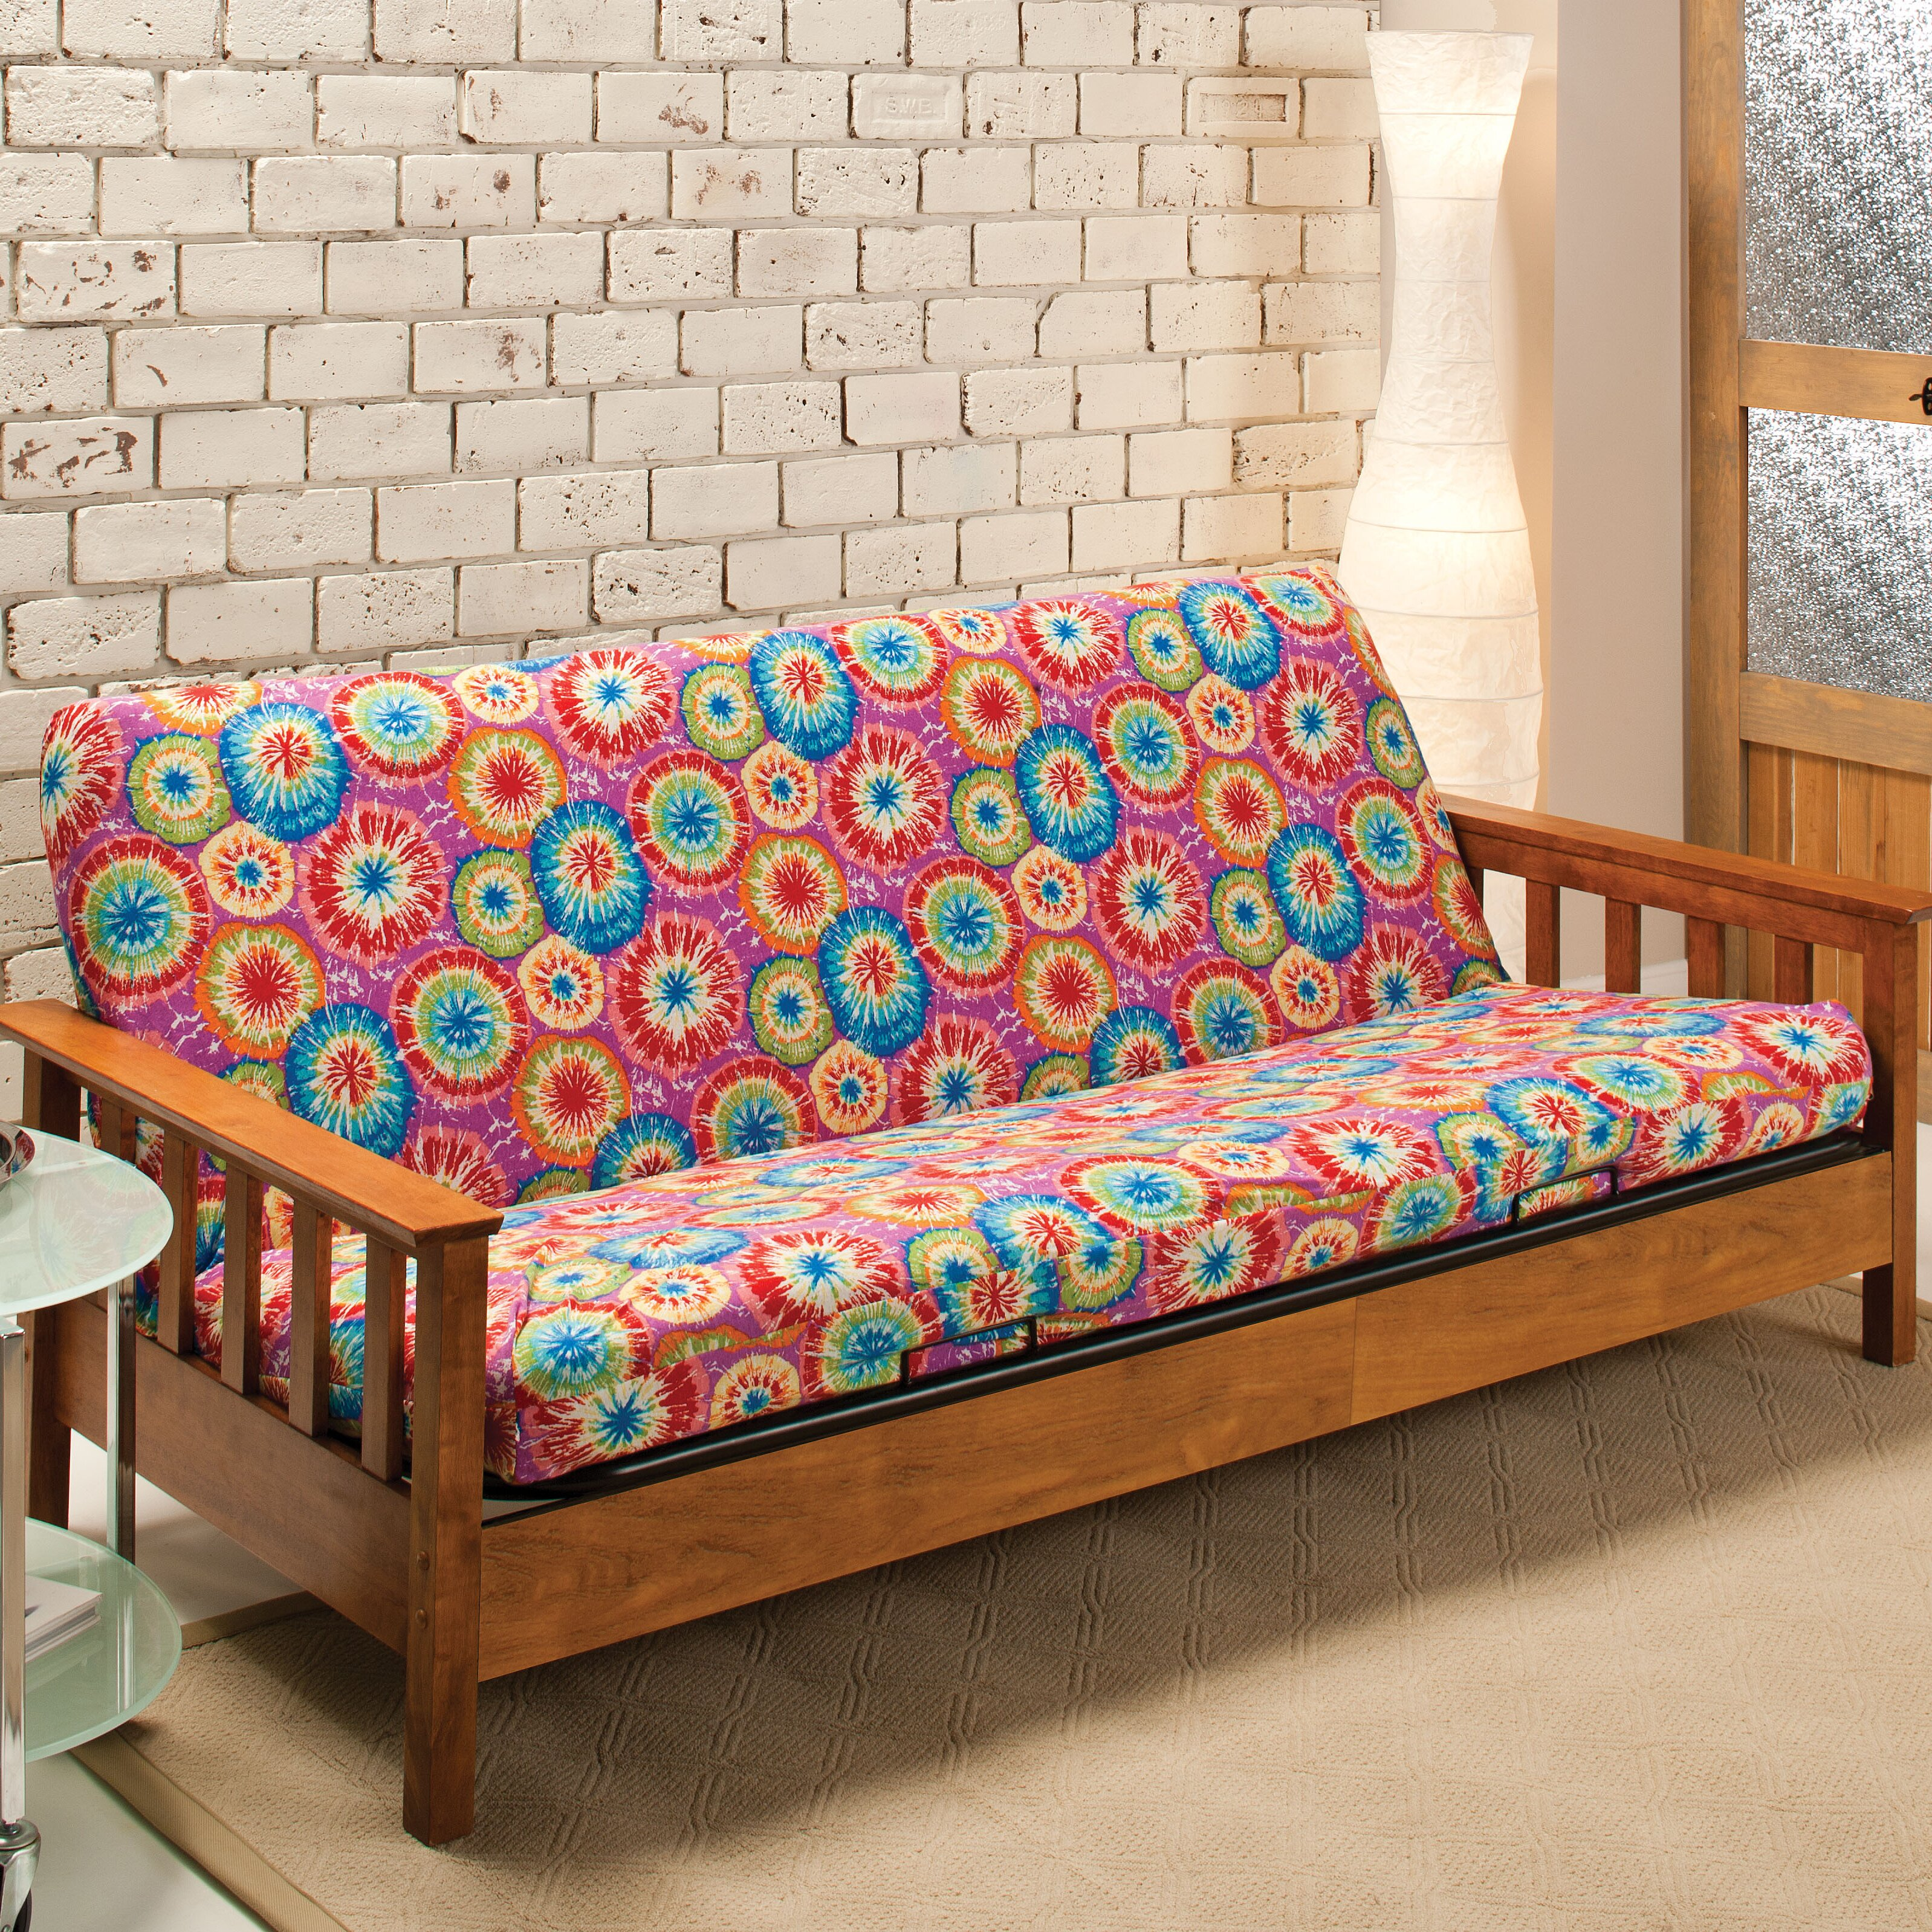 Madison Home Patterned Florence Futon Slipcover. Madison Home Patterned Florence Futon Slipcover   Reviews   Wayfair